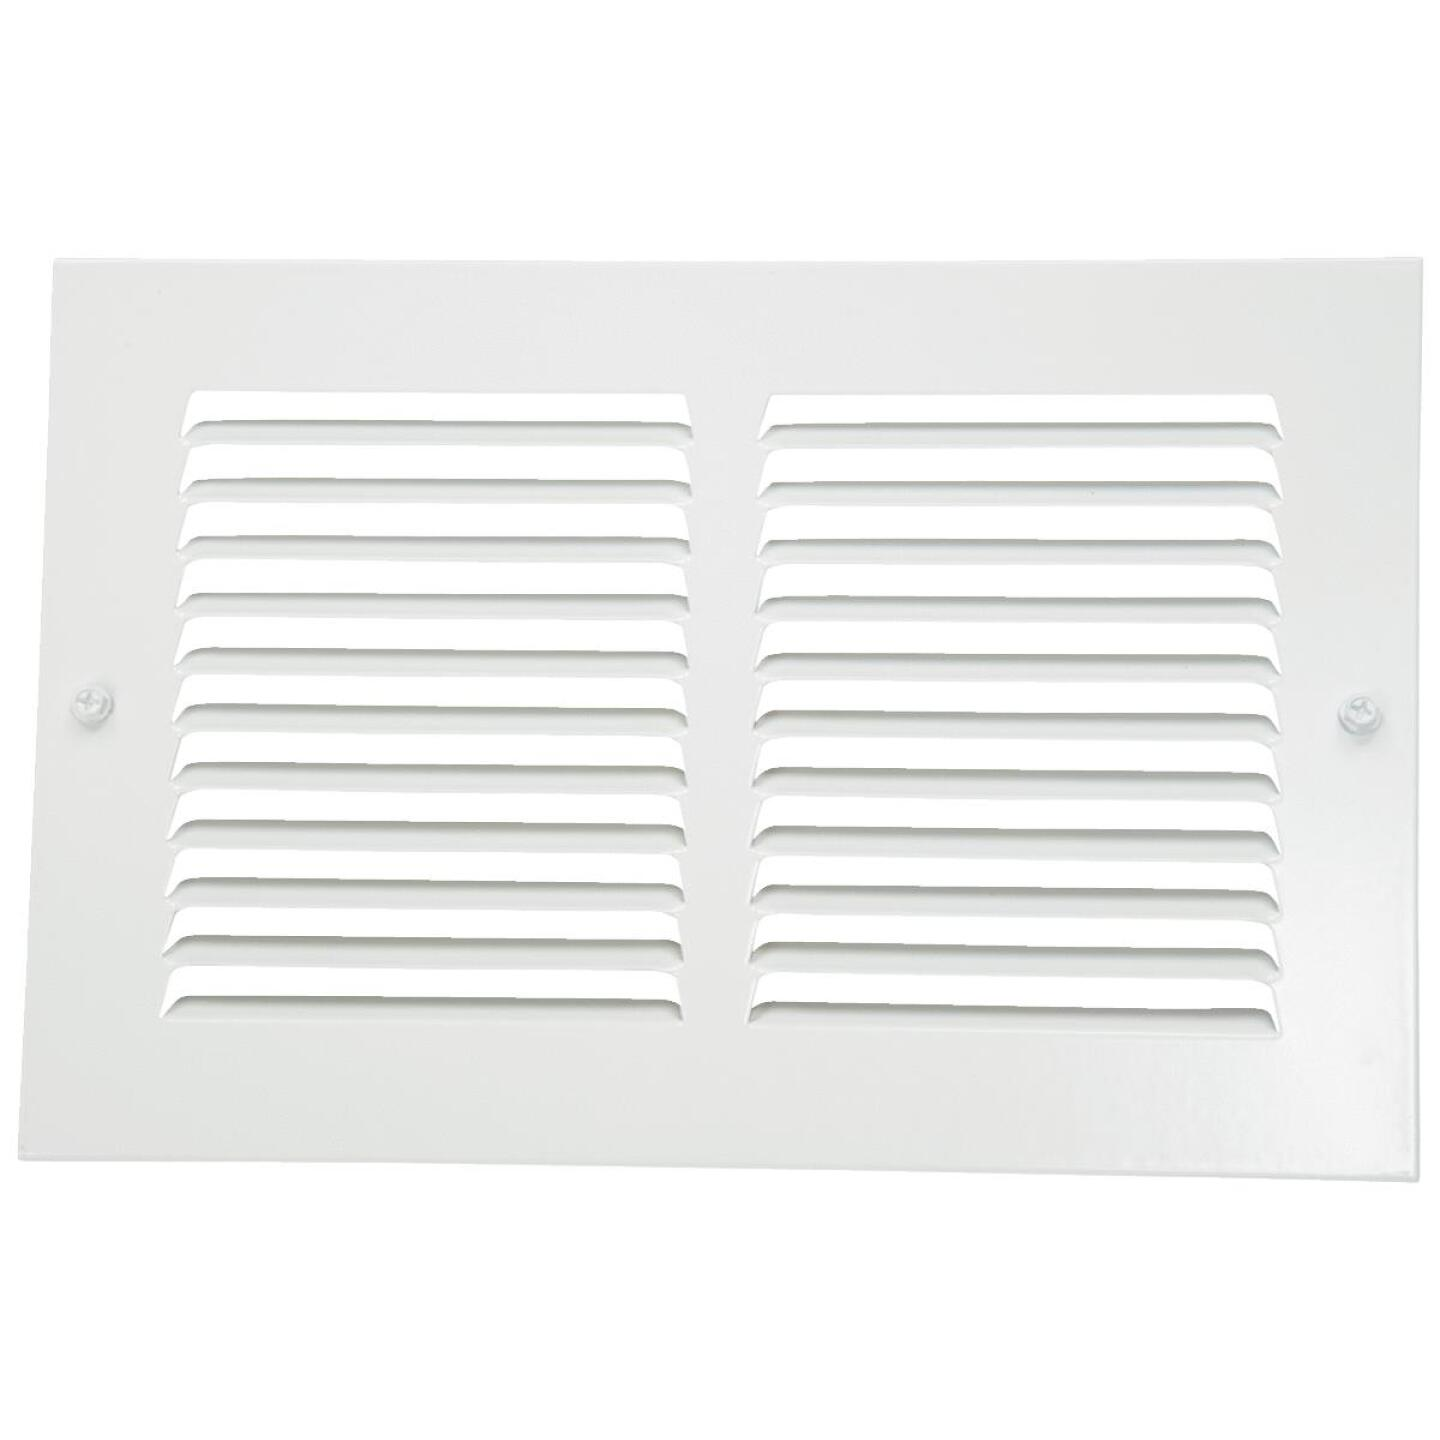 Home Impressions 6 In. x 10 In. Stamped Steel Return Air Grille Image 2